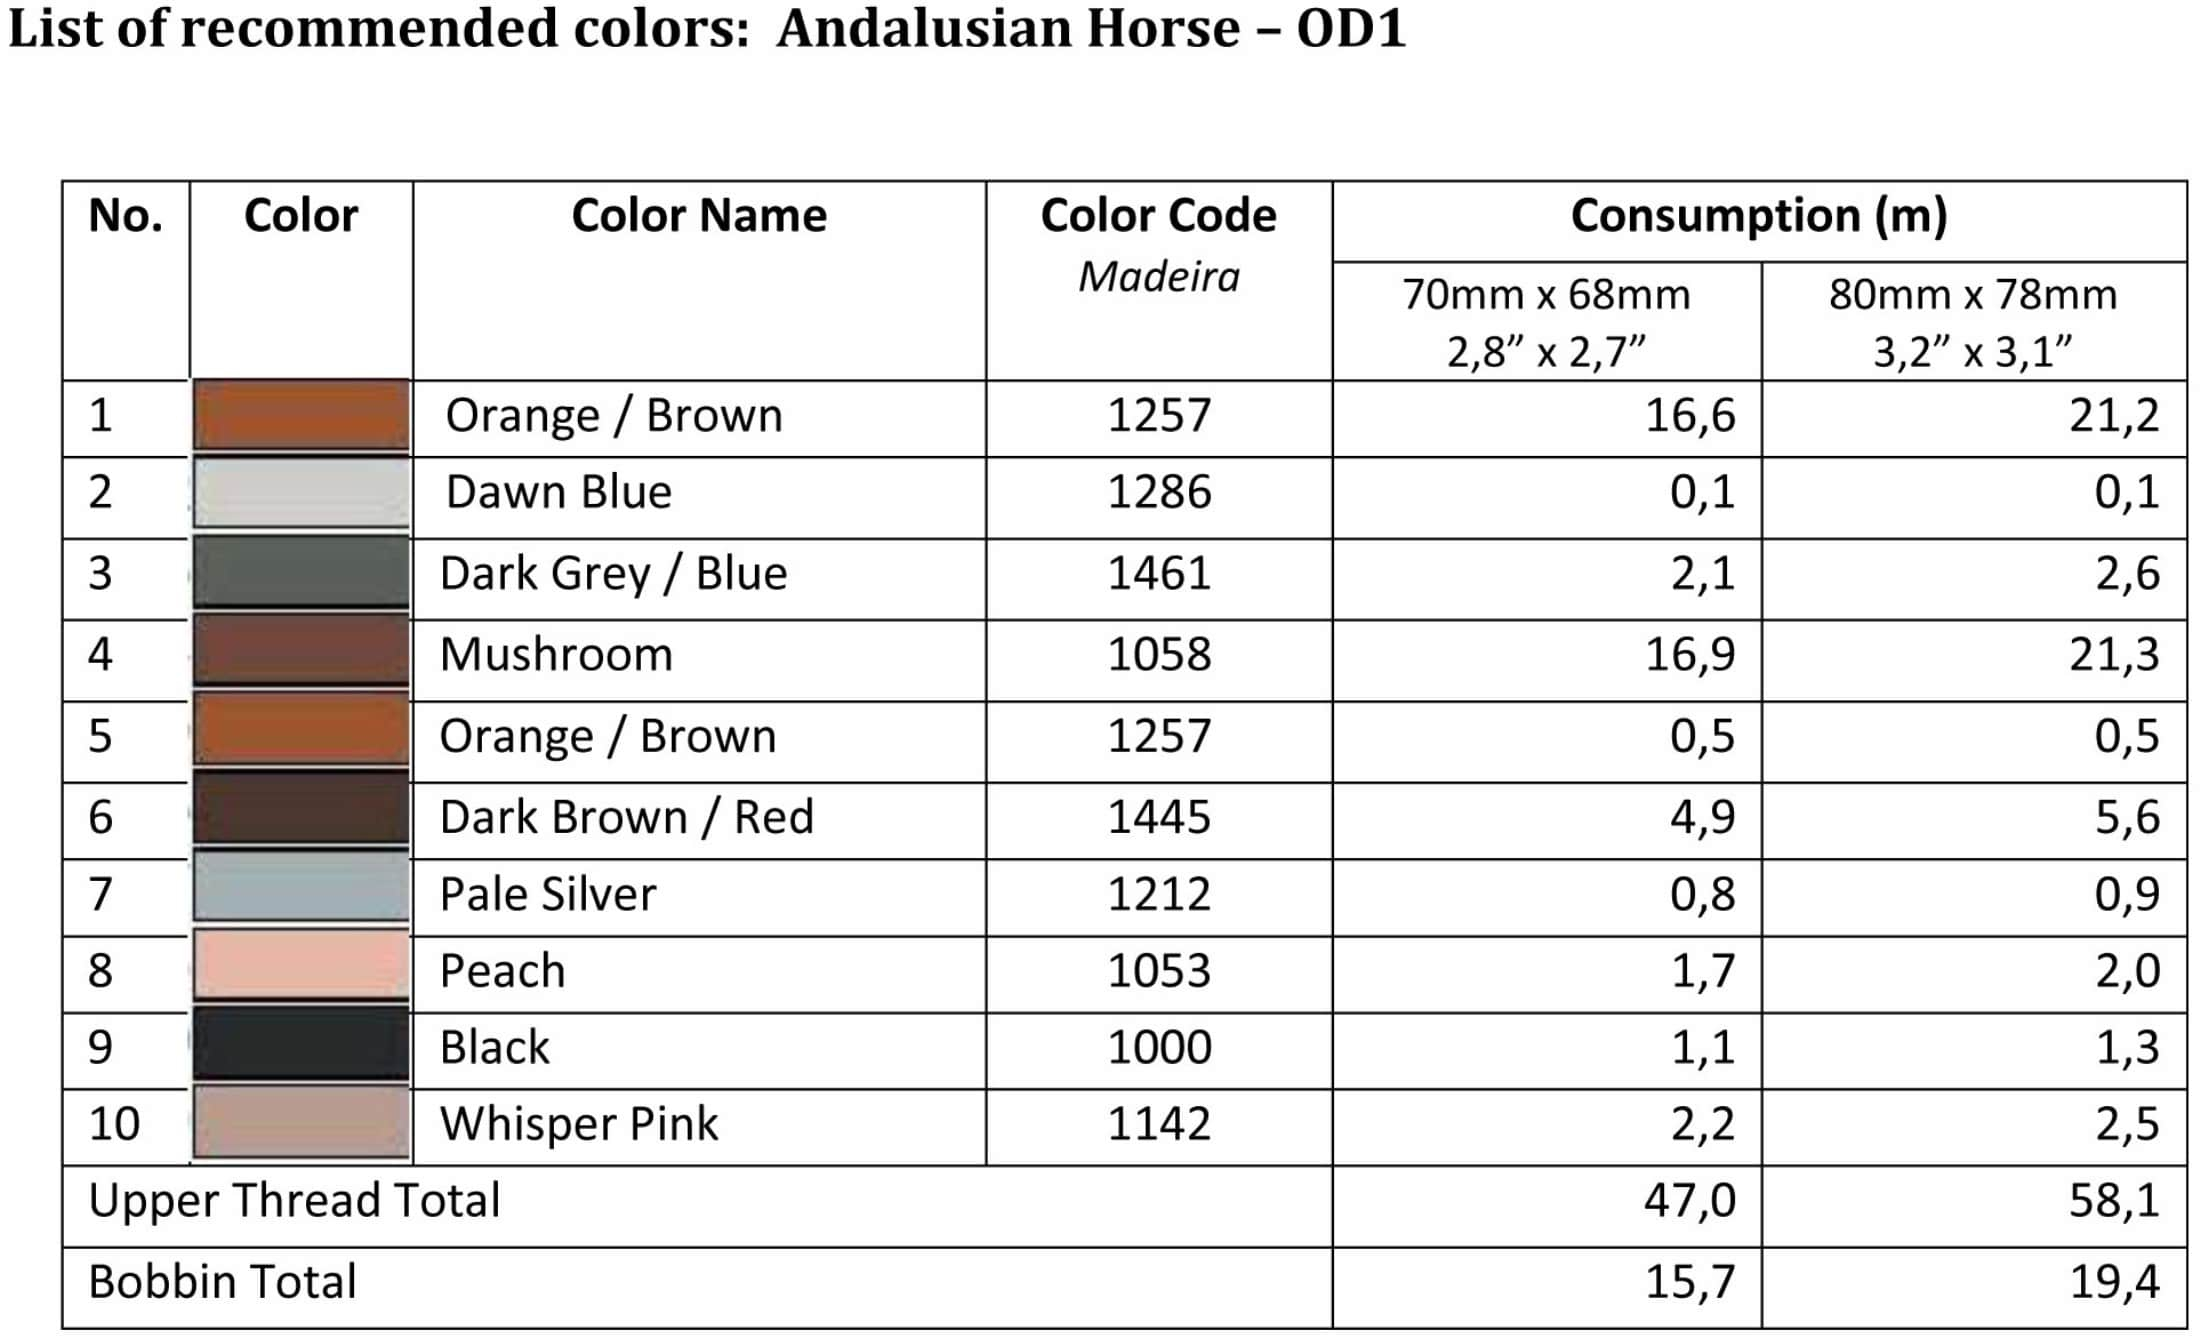 List of recommended colors -OD1